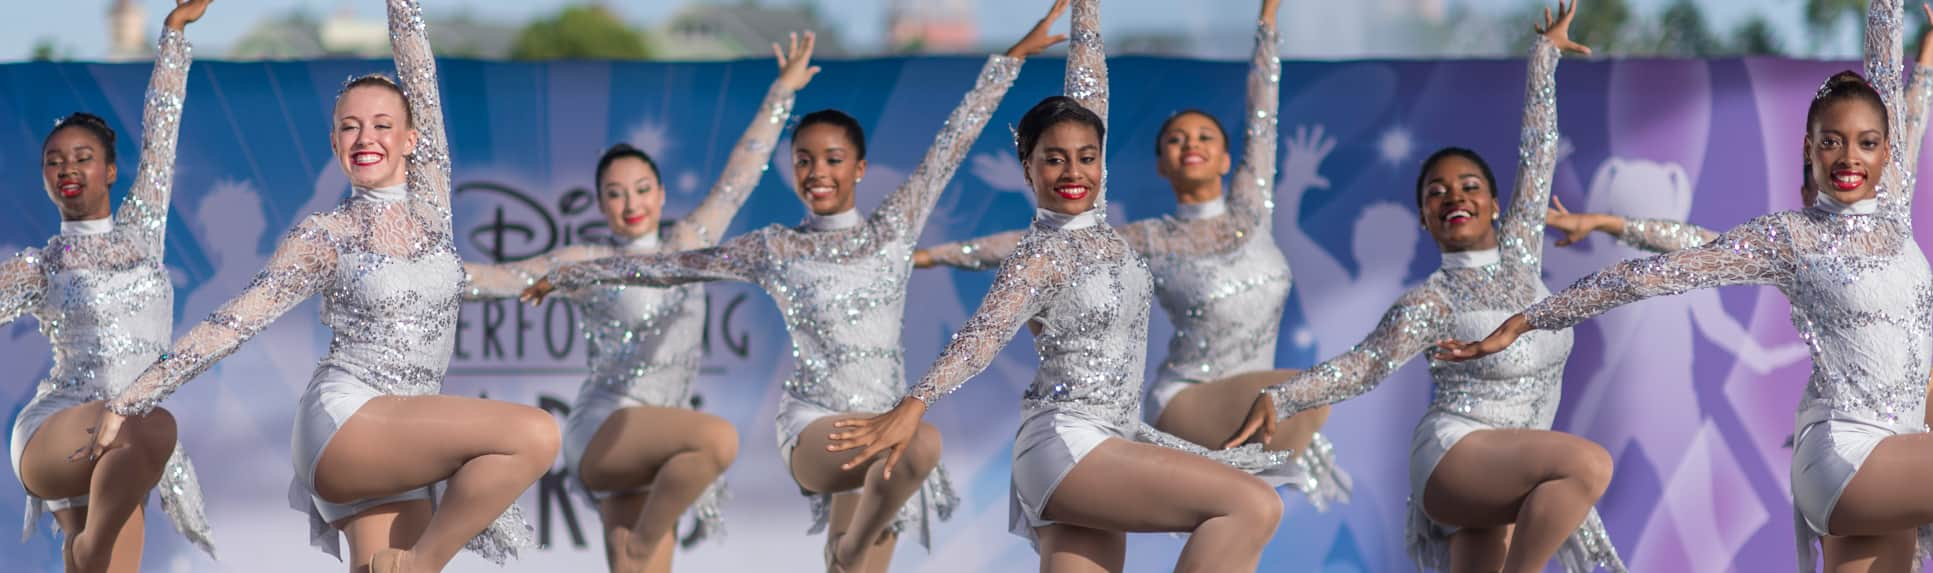 A group of dancers pose onstage